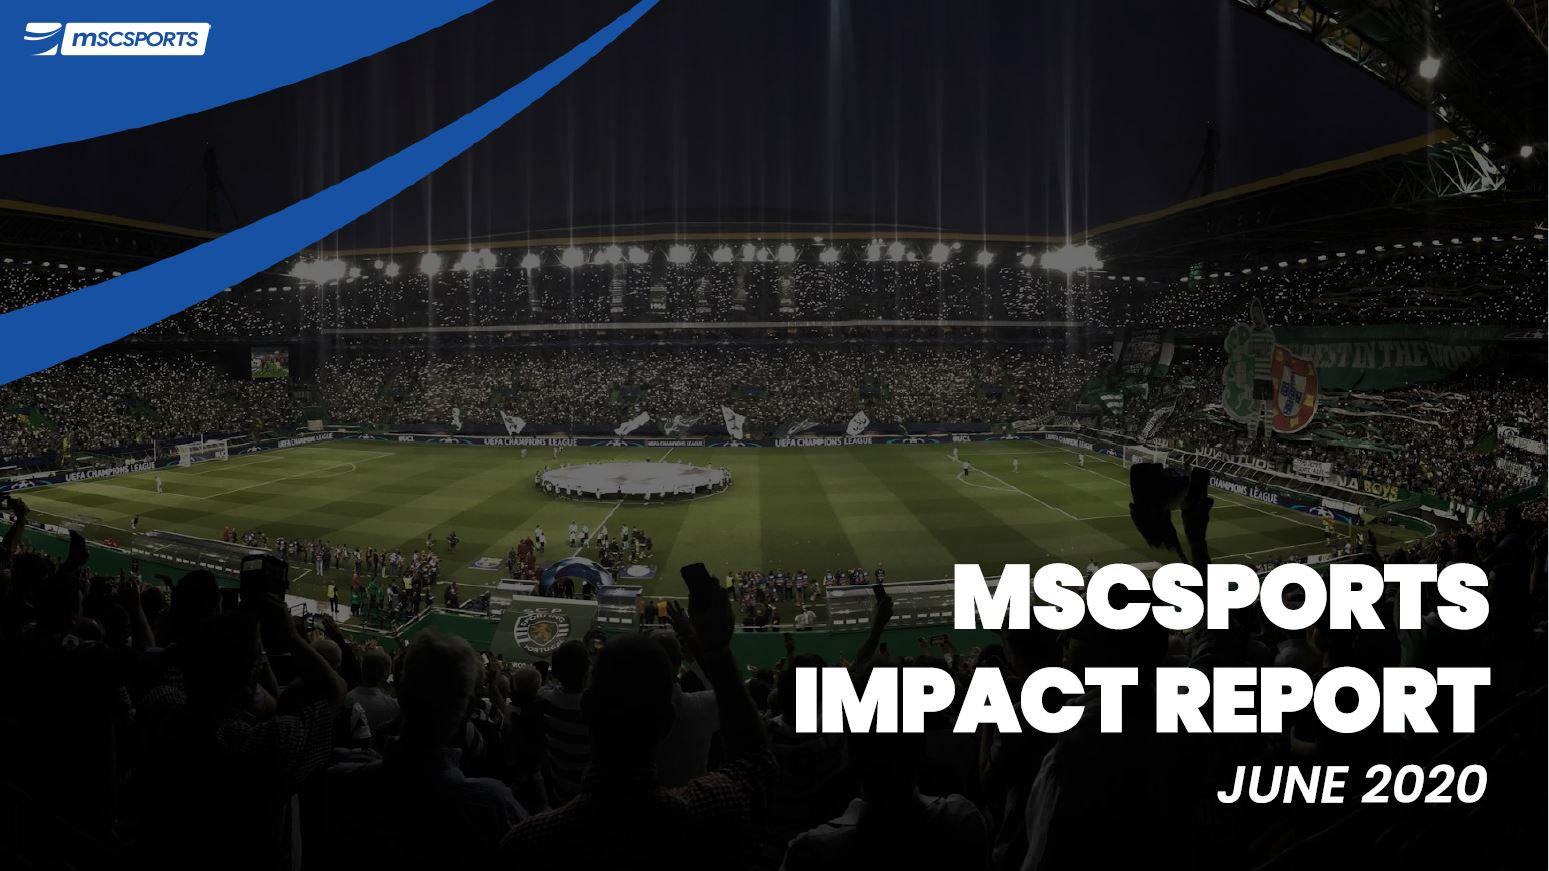 Mscsports impact report June cover